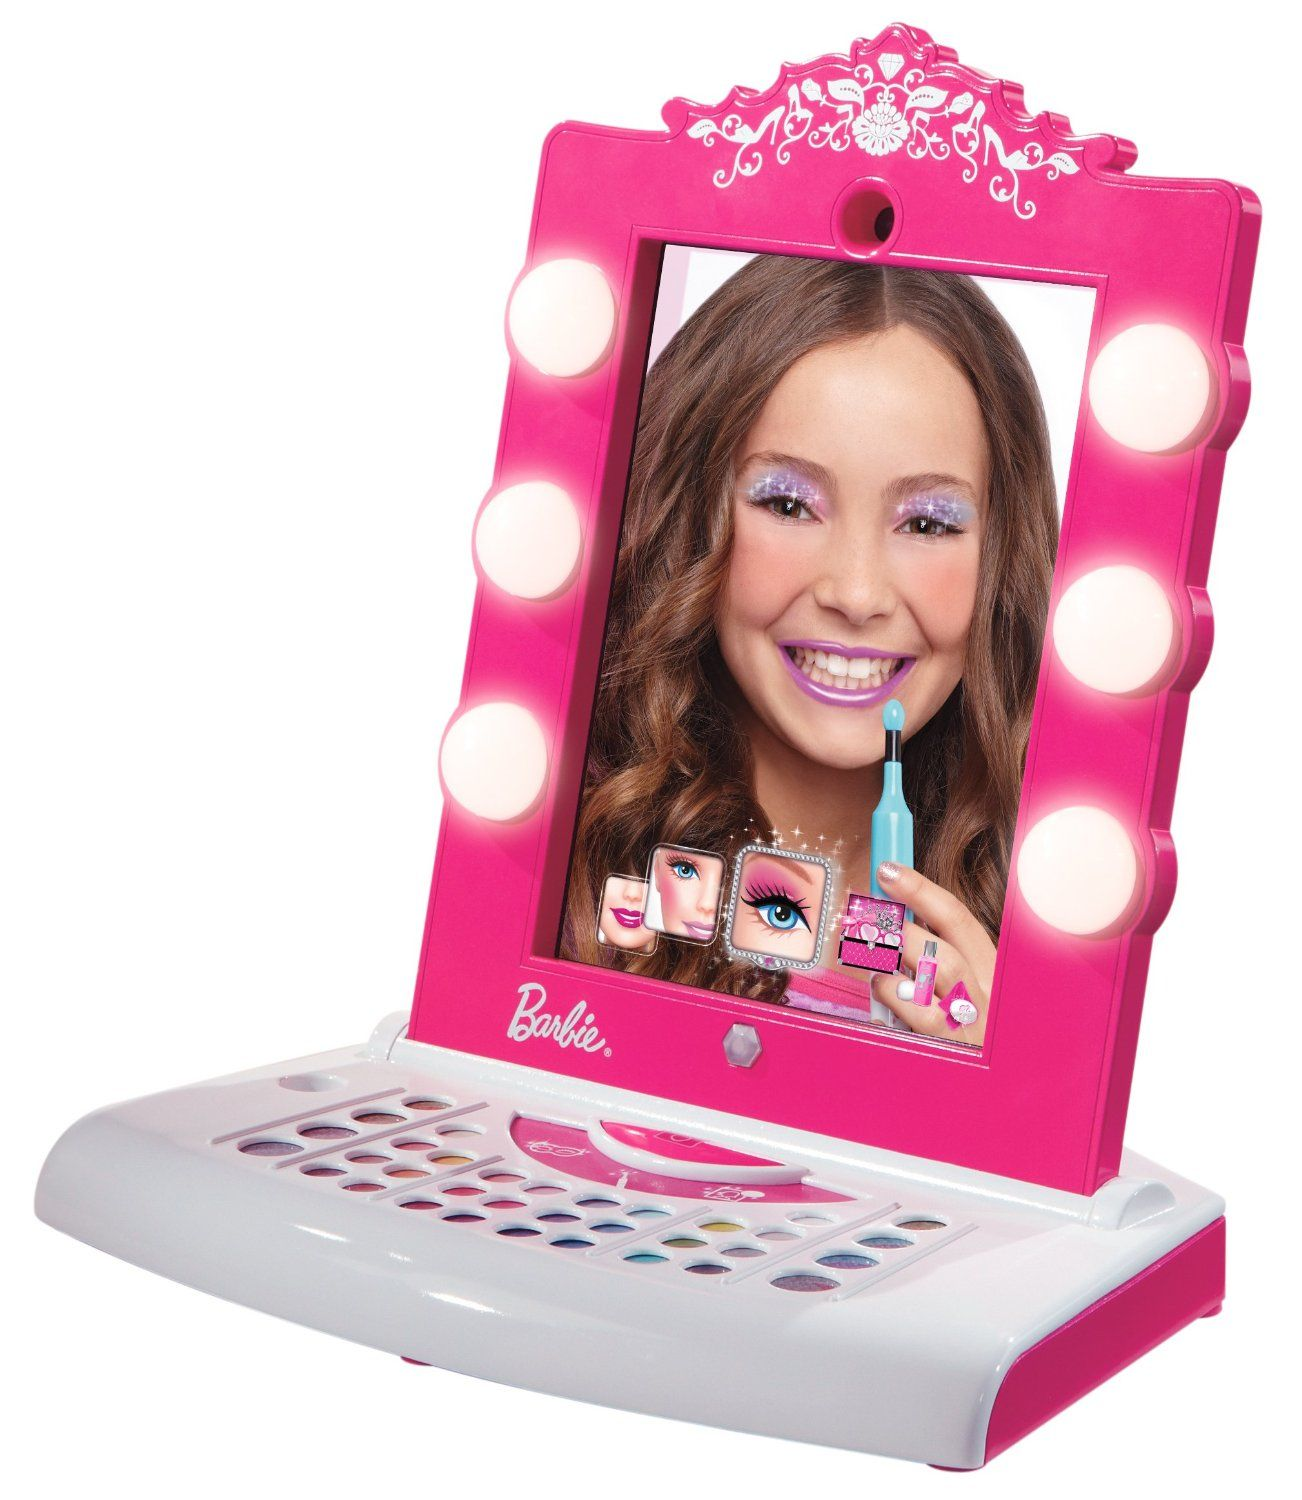 The Totally Awesome Barbie Digital Makeover Mirror for Girls